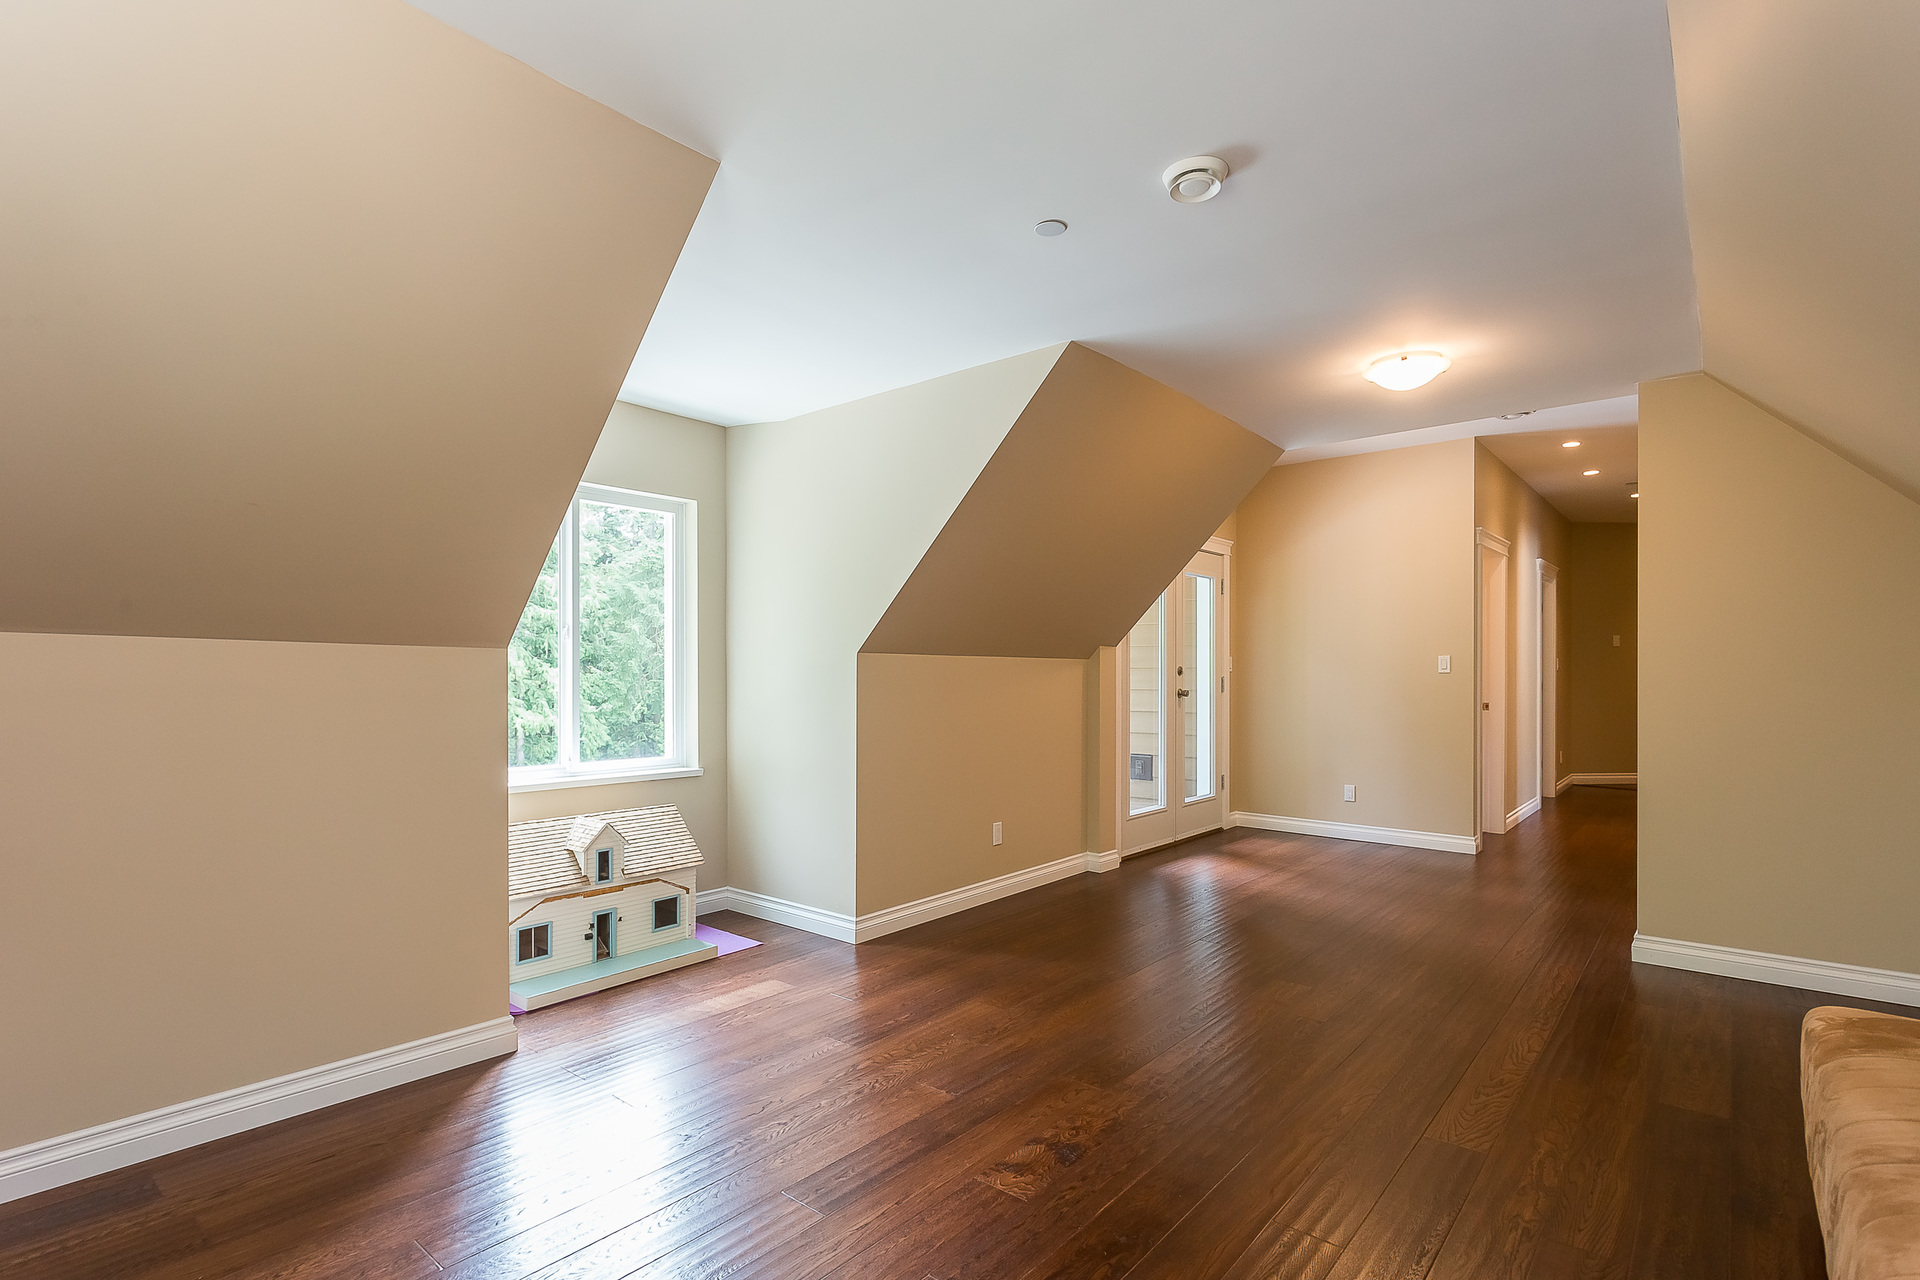 Recreation or Nanny Suite Upper Floor at 1408 Crystal Creek Drive, Anmore, Port Moody